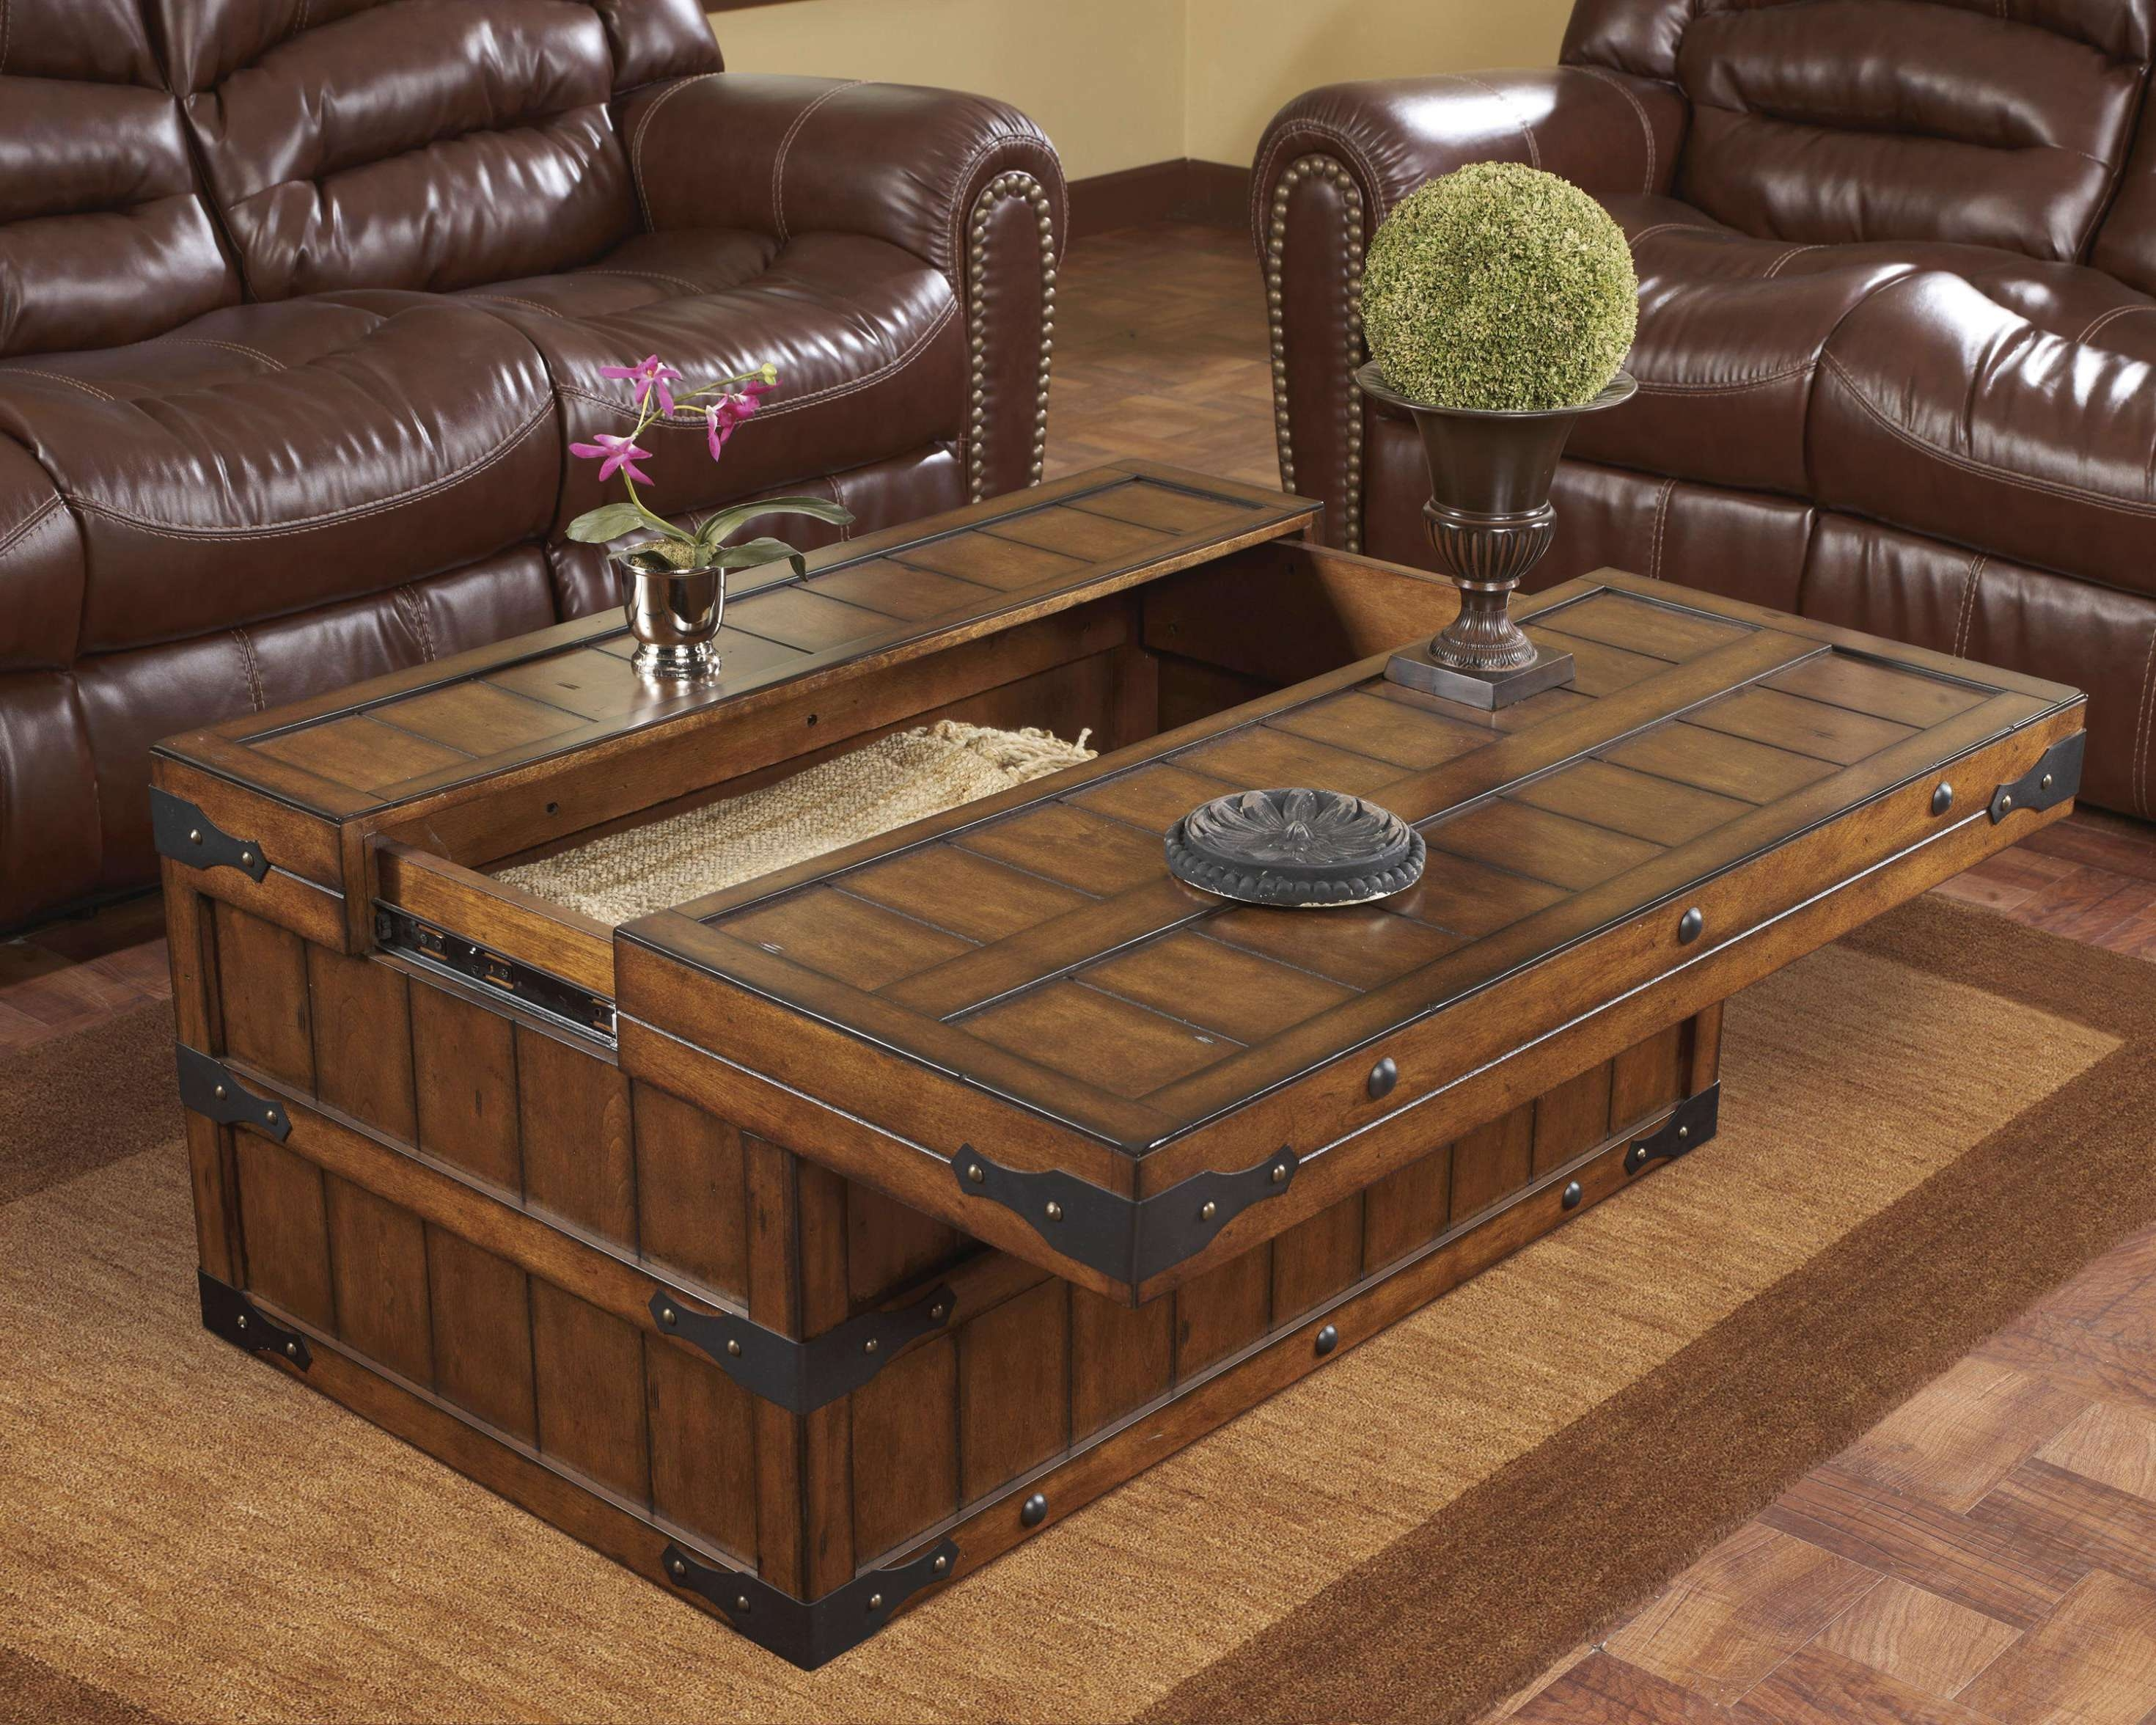 Coffee Tables : Rustic Storage Trunk Coffee Table Trunks And Inside Newest Storage Coffee Tables (View 3 of 20)